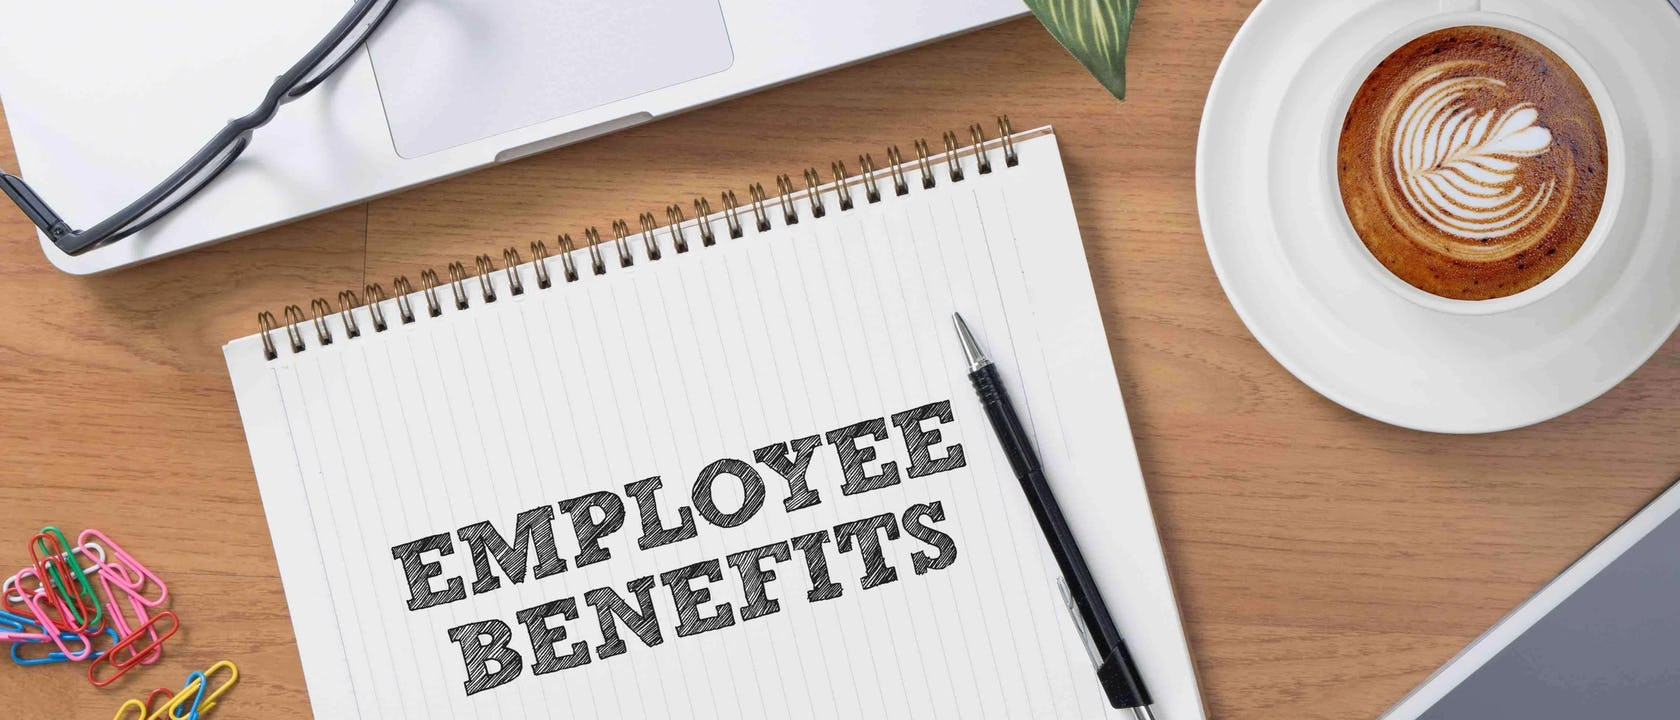 Payrolling benefits - what does it mean?